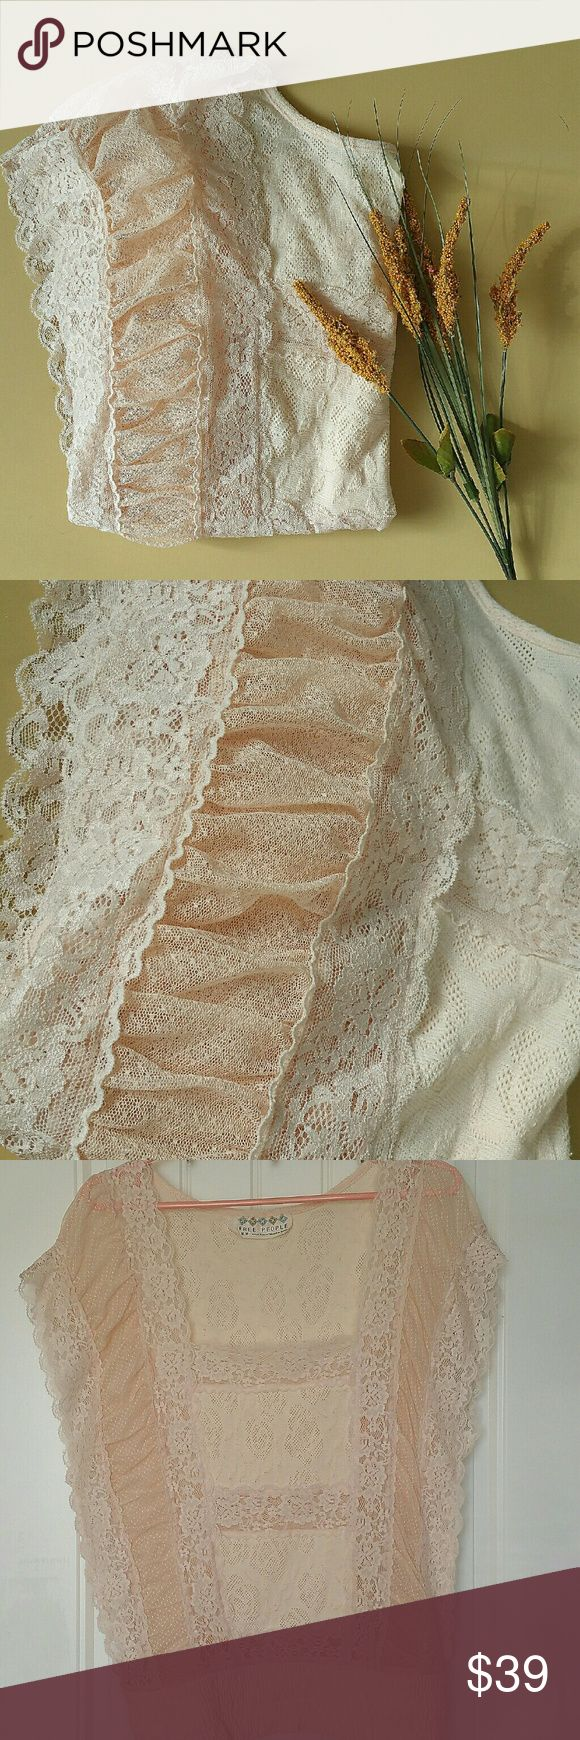 Free People Peach Lace Blouse This is a beautifully feminine peach lace blouse by Free People!   Intricate lace design with vertical ruching. Stretch hem and see through body. Wear a bralette or a neutral cami underneath! Free People Tops Blouses